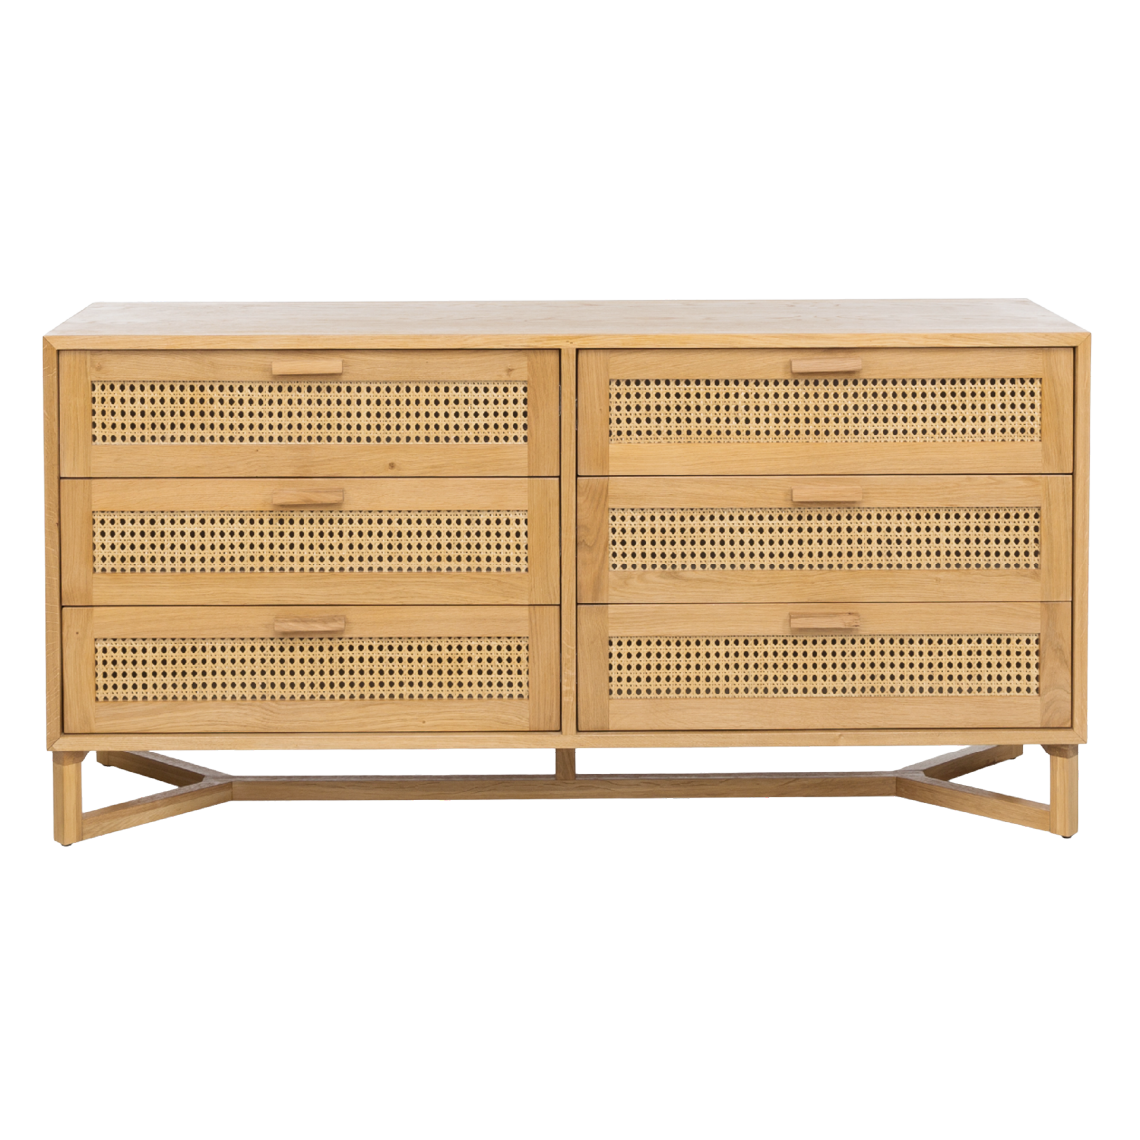 39137 Popular Category - Deep etches_Dressers.png